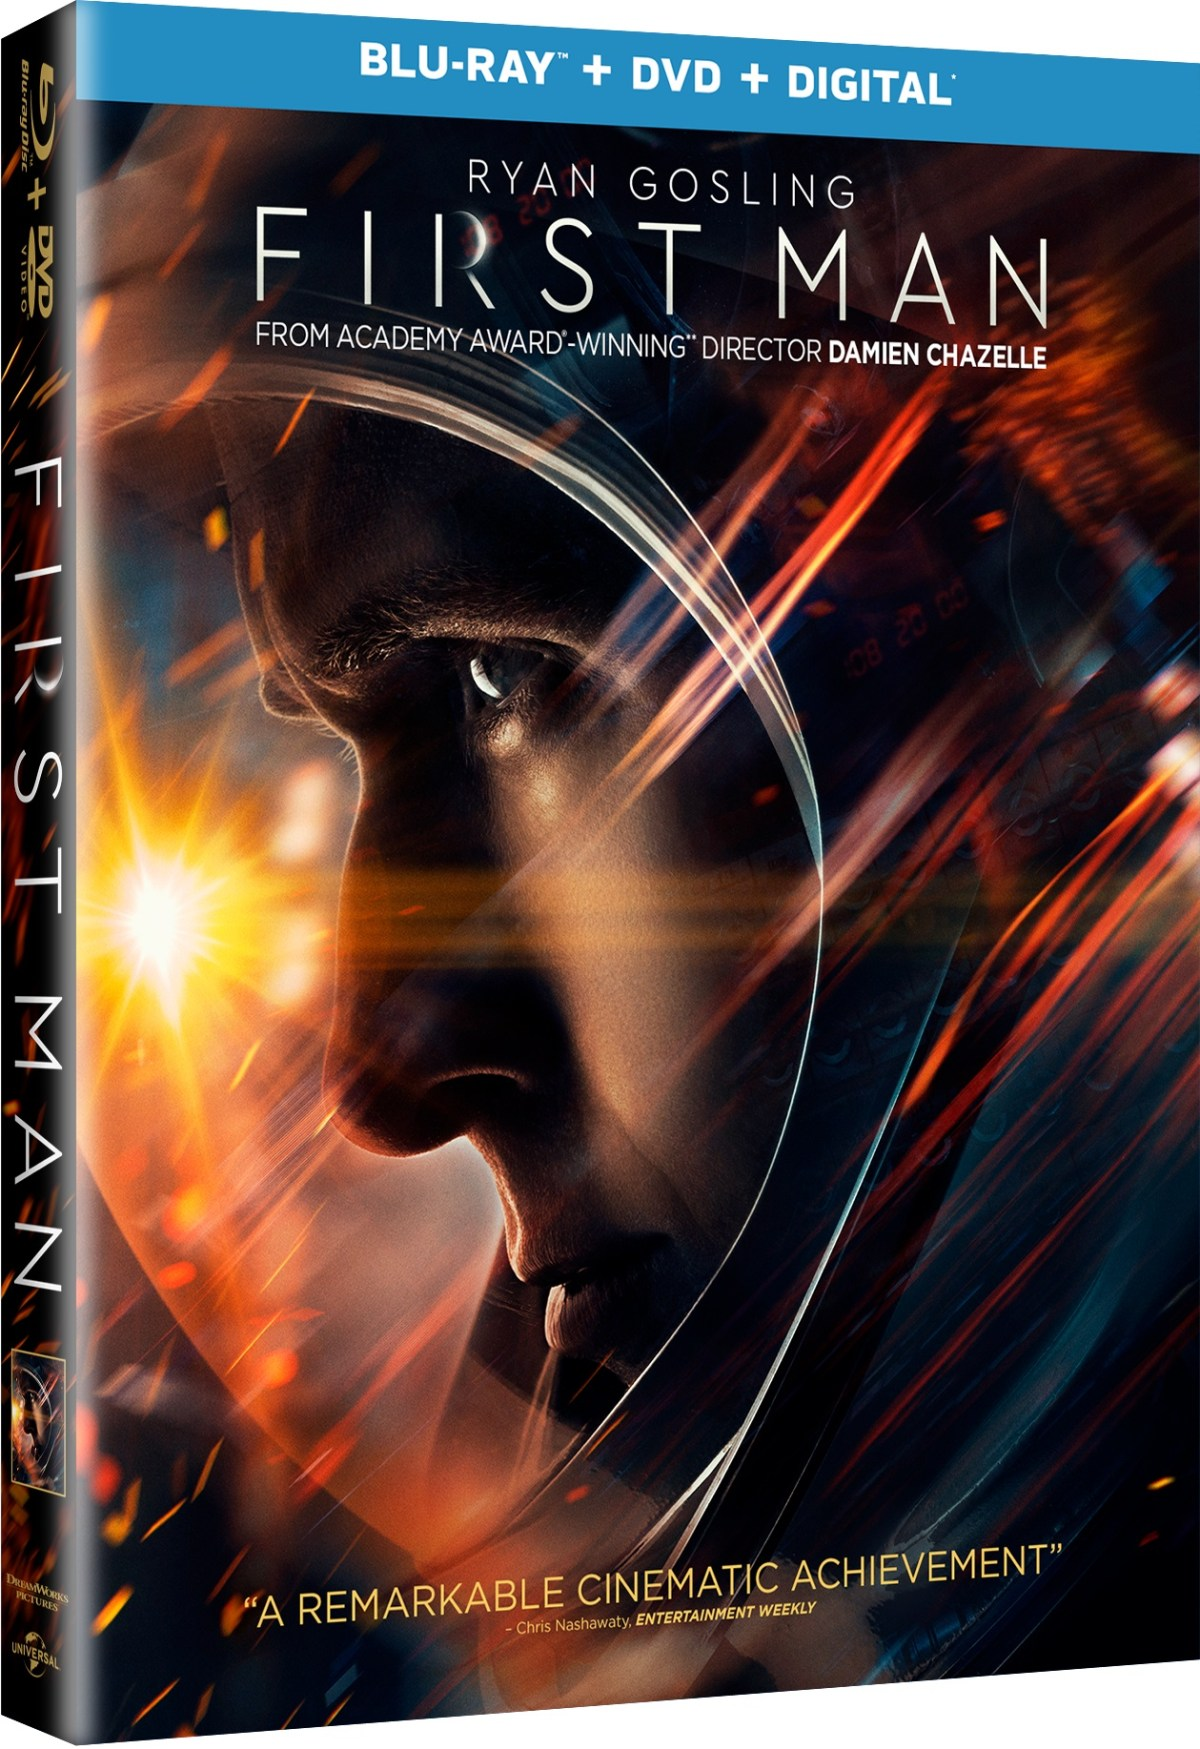 [GIVEAWAY] Win 'First Man' On Blu-ray Combo Pack: Available On 4K Ultra HD, Blu-ray & DVD January 22, 2019 From Universal 10